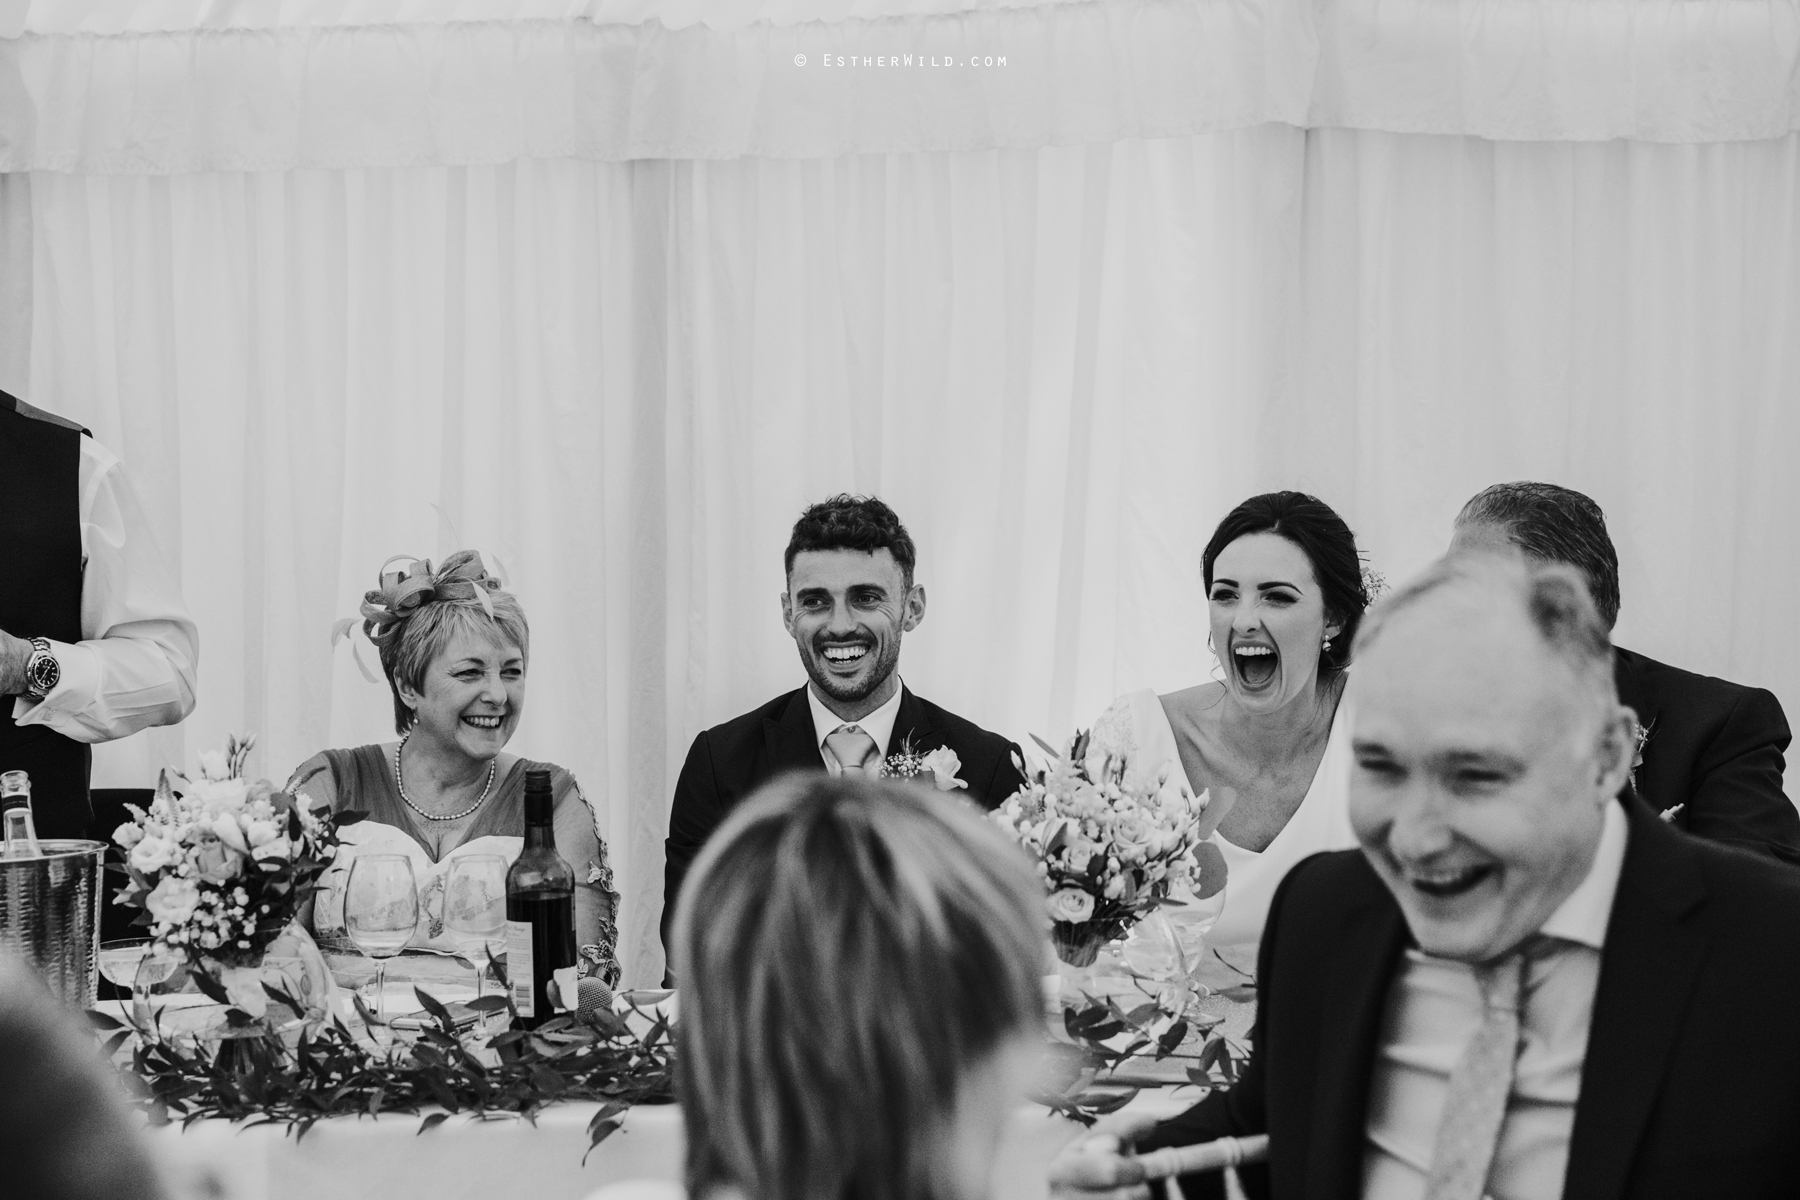 Wootton_Wedding_Copyright_Esther_Wild_Photographer_IMG_2460-2.jpg